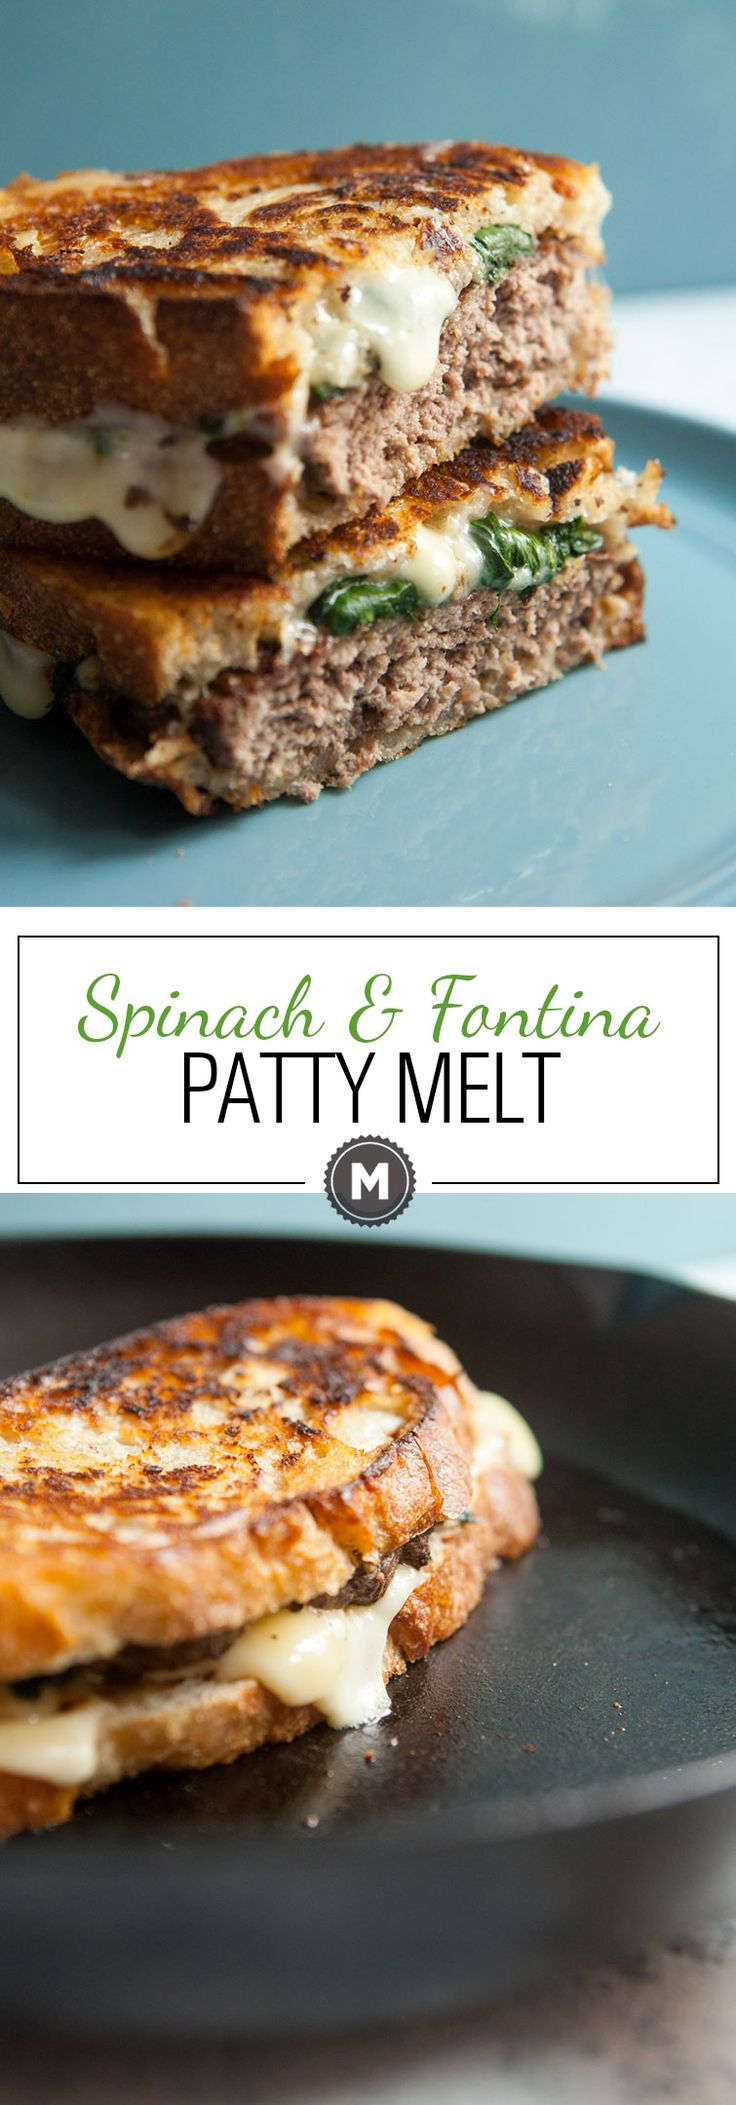 Spinach Fontina Patty Melt: A fun twist on the classic made with fresh sauteed spinach and gooey fontina cheese. What a sandwich! | macheesmo.com